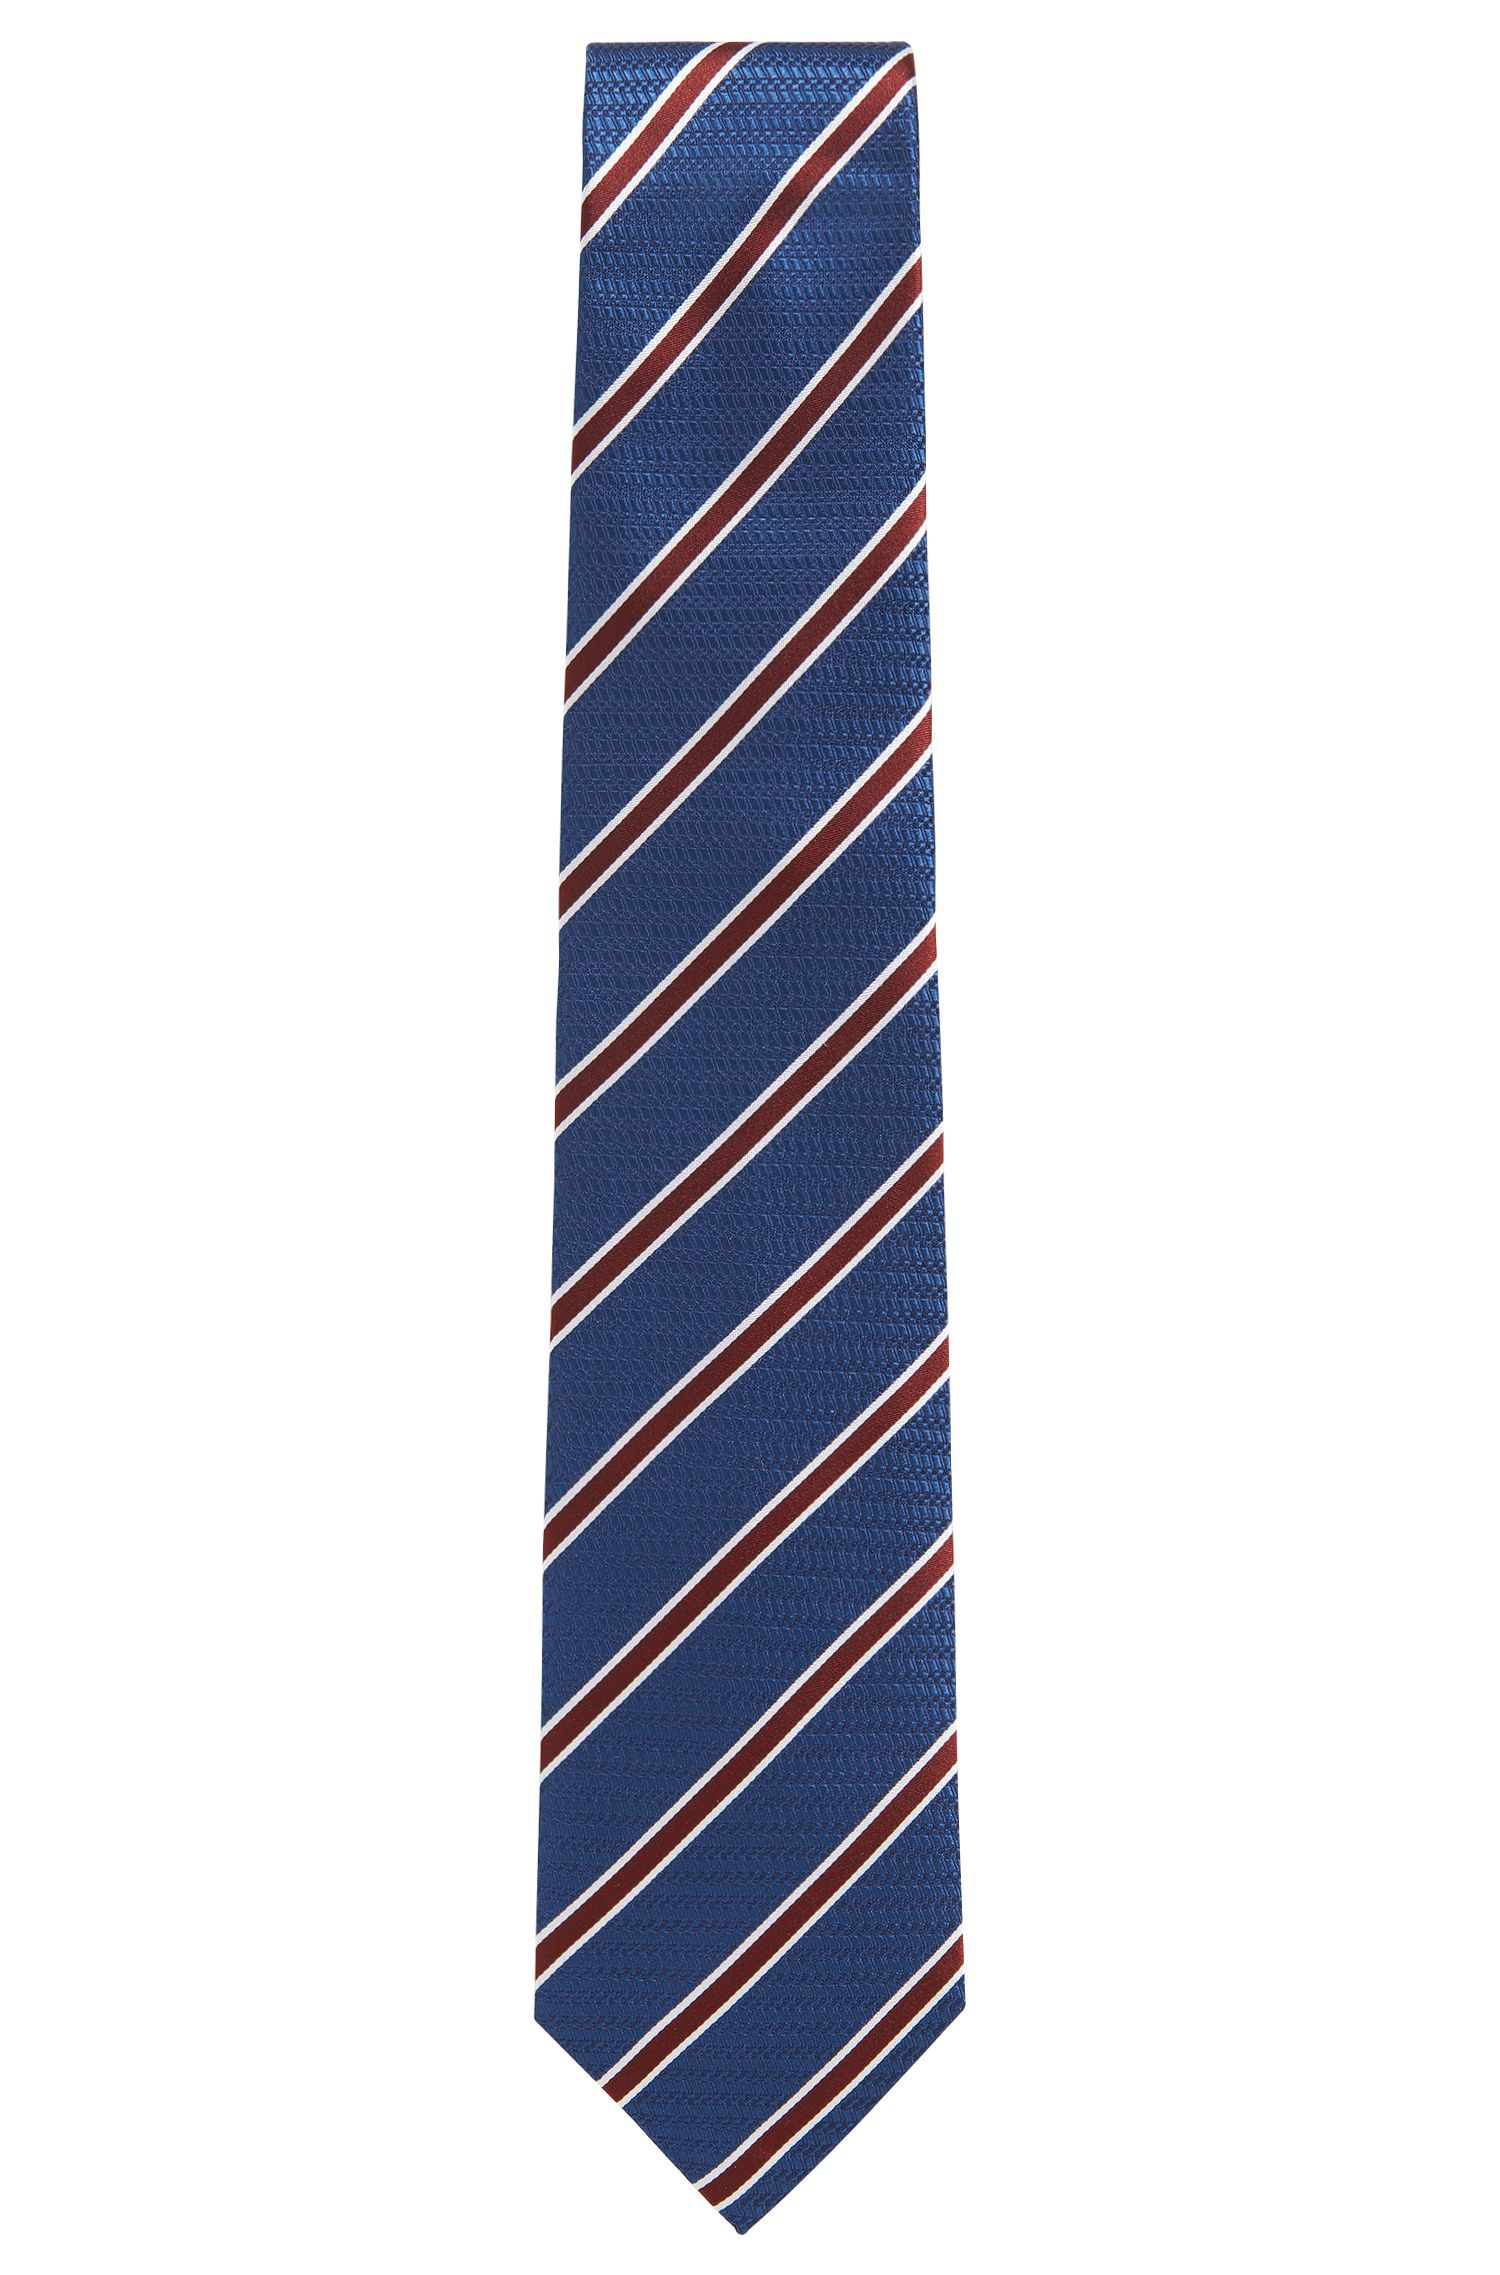 BOSS Tailored Striped Italian Silk Tie, Open Blue